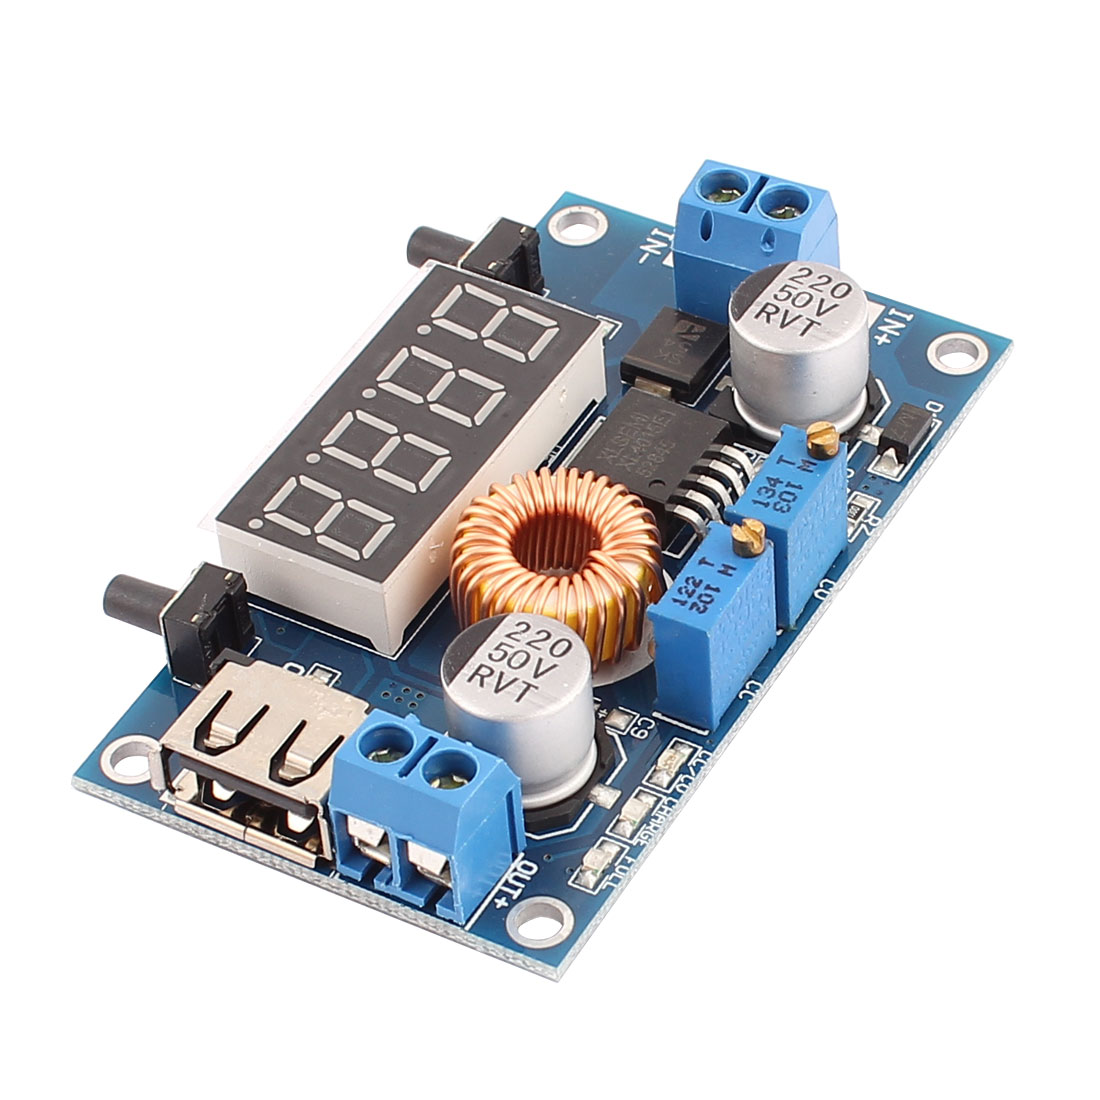 5A Constant Voltage and Constant Current Step Down Modules with Shell